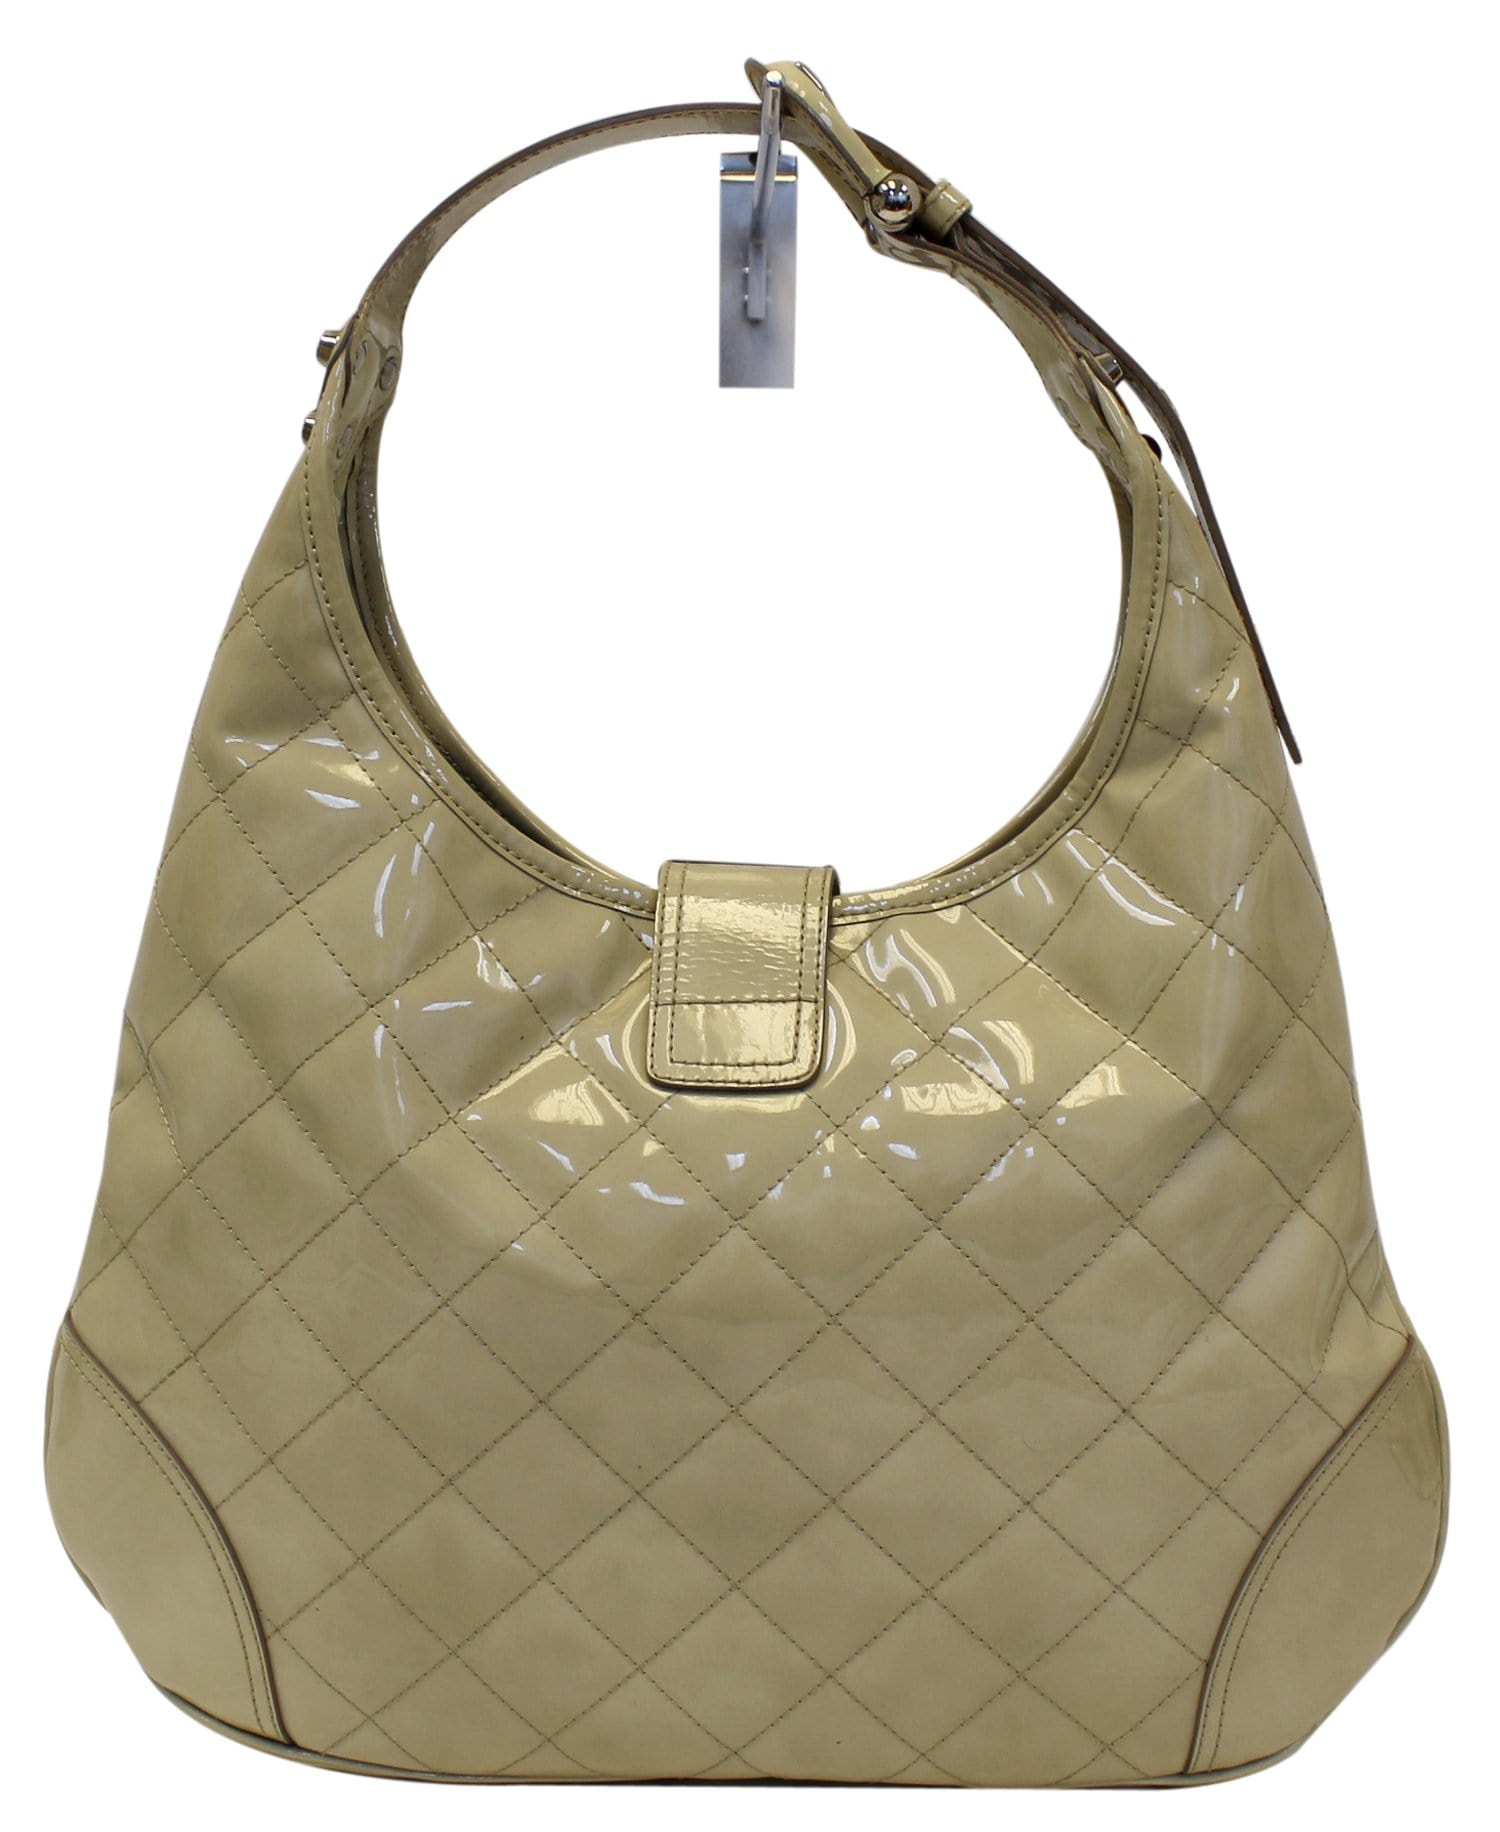 eef0c72e7fe5 BURBERRY Quilted Patent Leather Brooke Hobo Handbag - 20% OFF